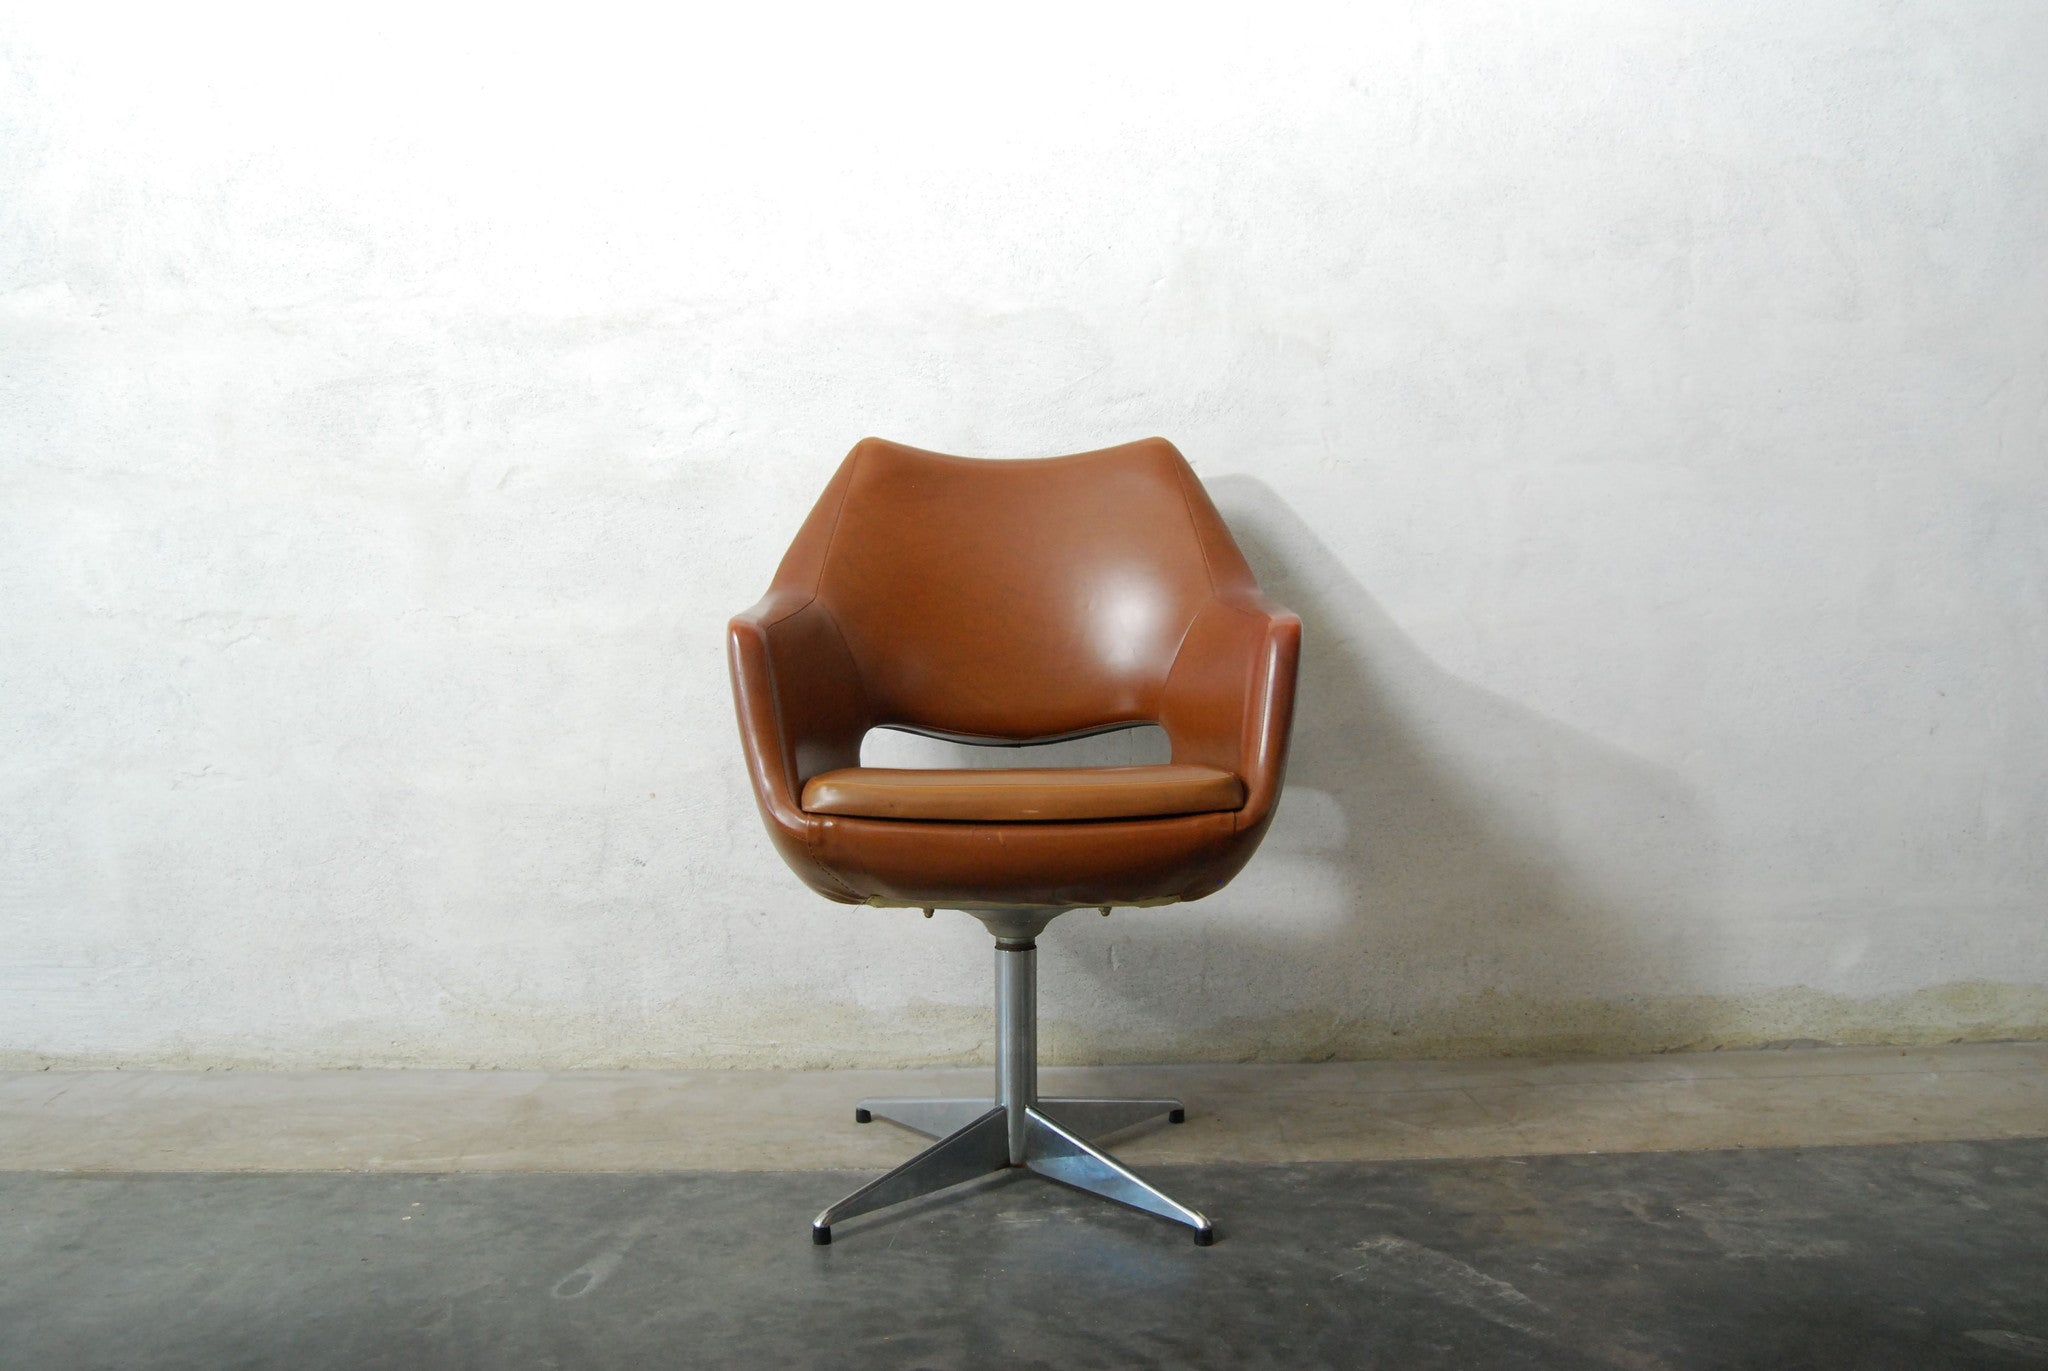 Swivelling desk chair